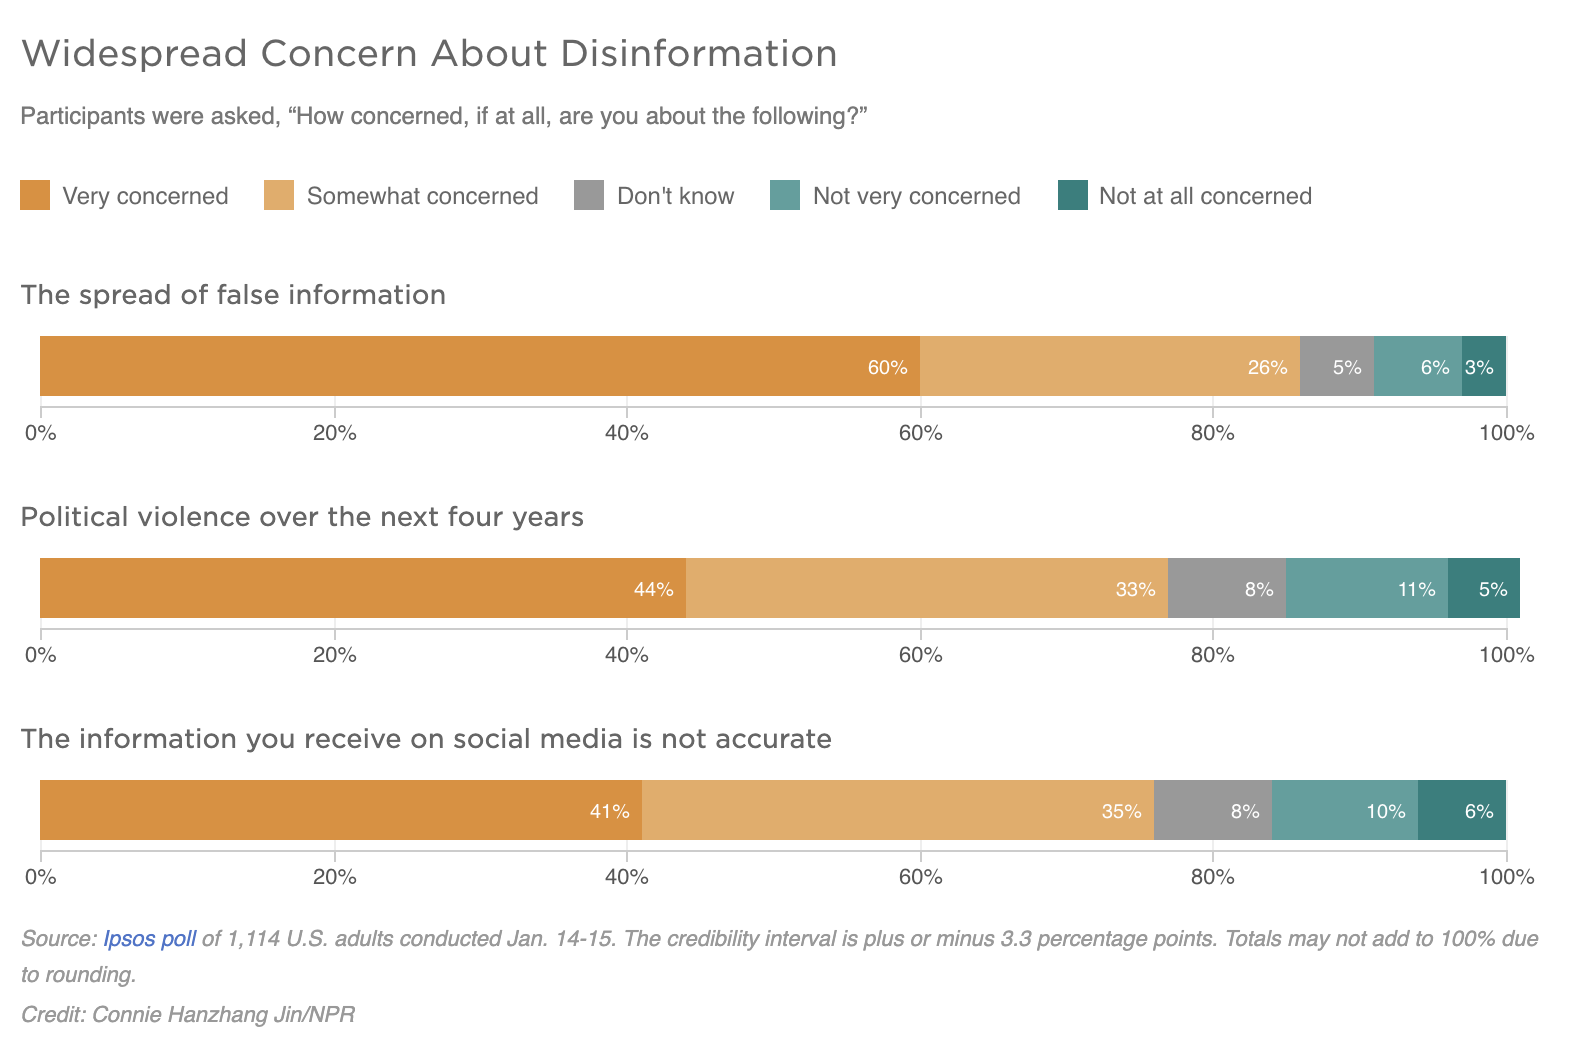 A graph illustrates widespread concern about disinformation